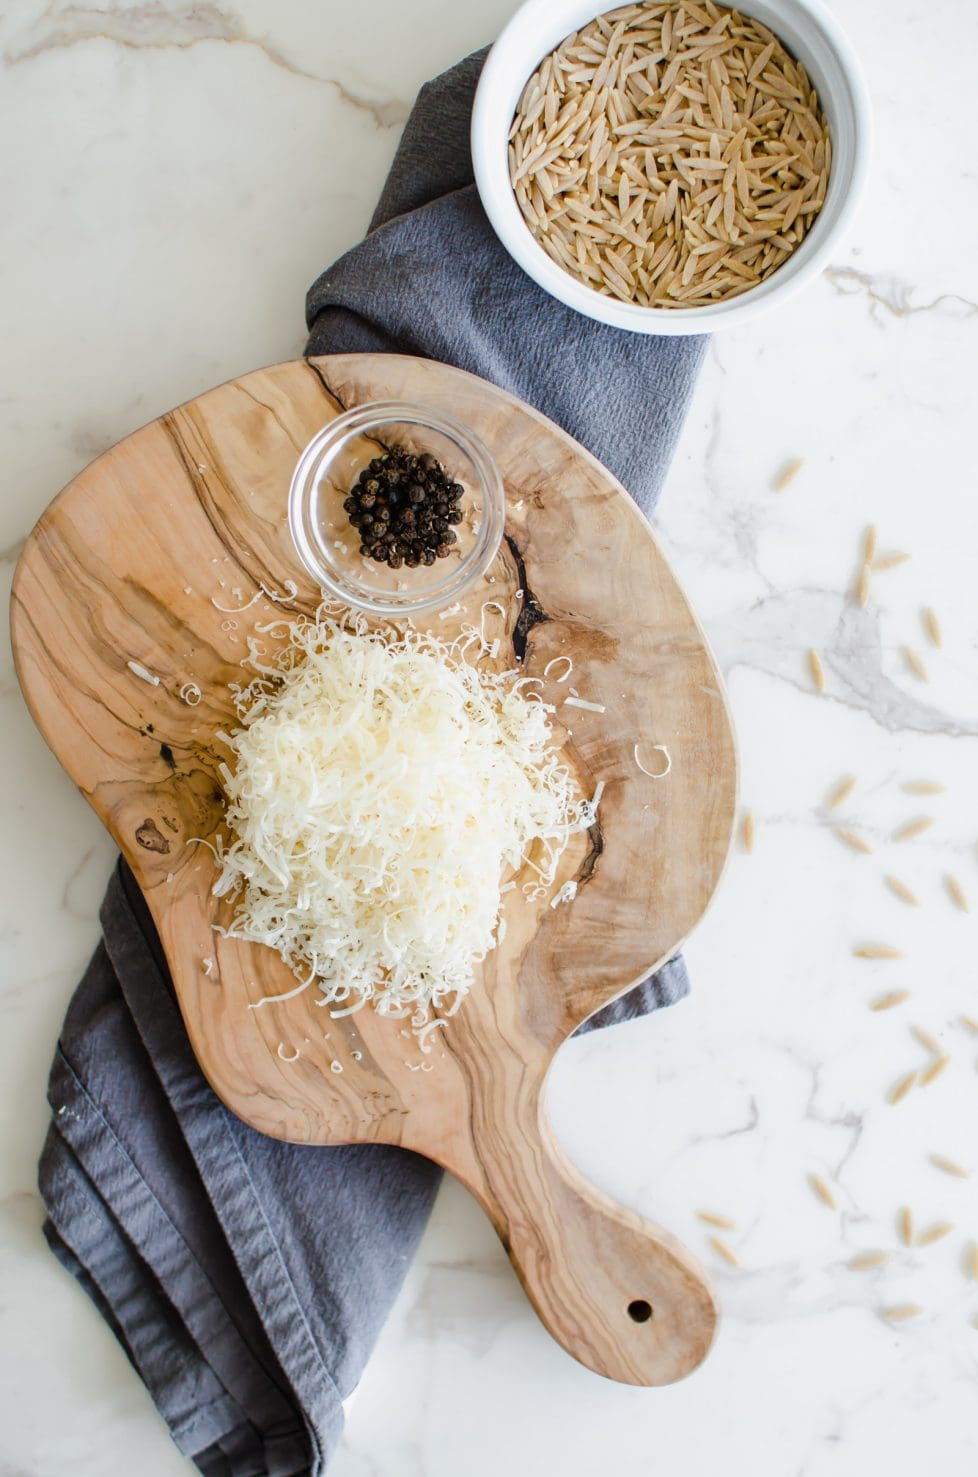 This simple recipe for Orzo Cacio e Pepe is a great option for a side dish on a weeknight to serve with grilled or roasted meats, fish, or a simple side salad! Easy Italian food that is healthy and tastes delicious!